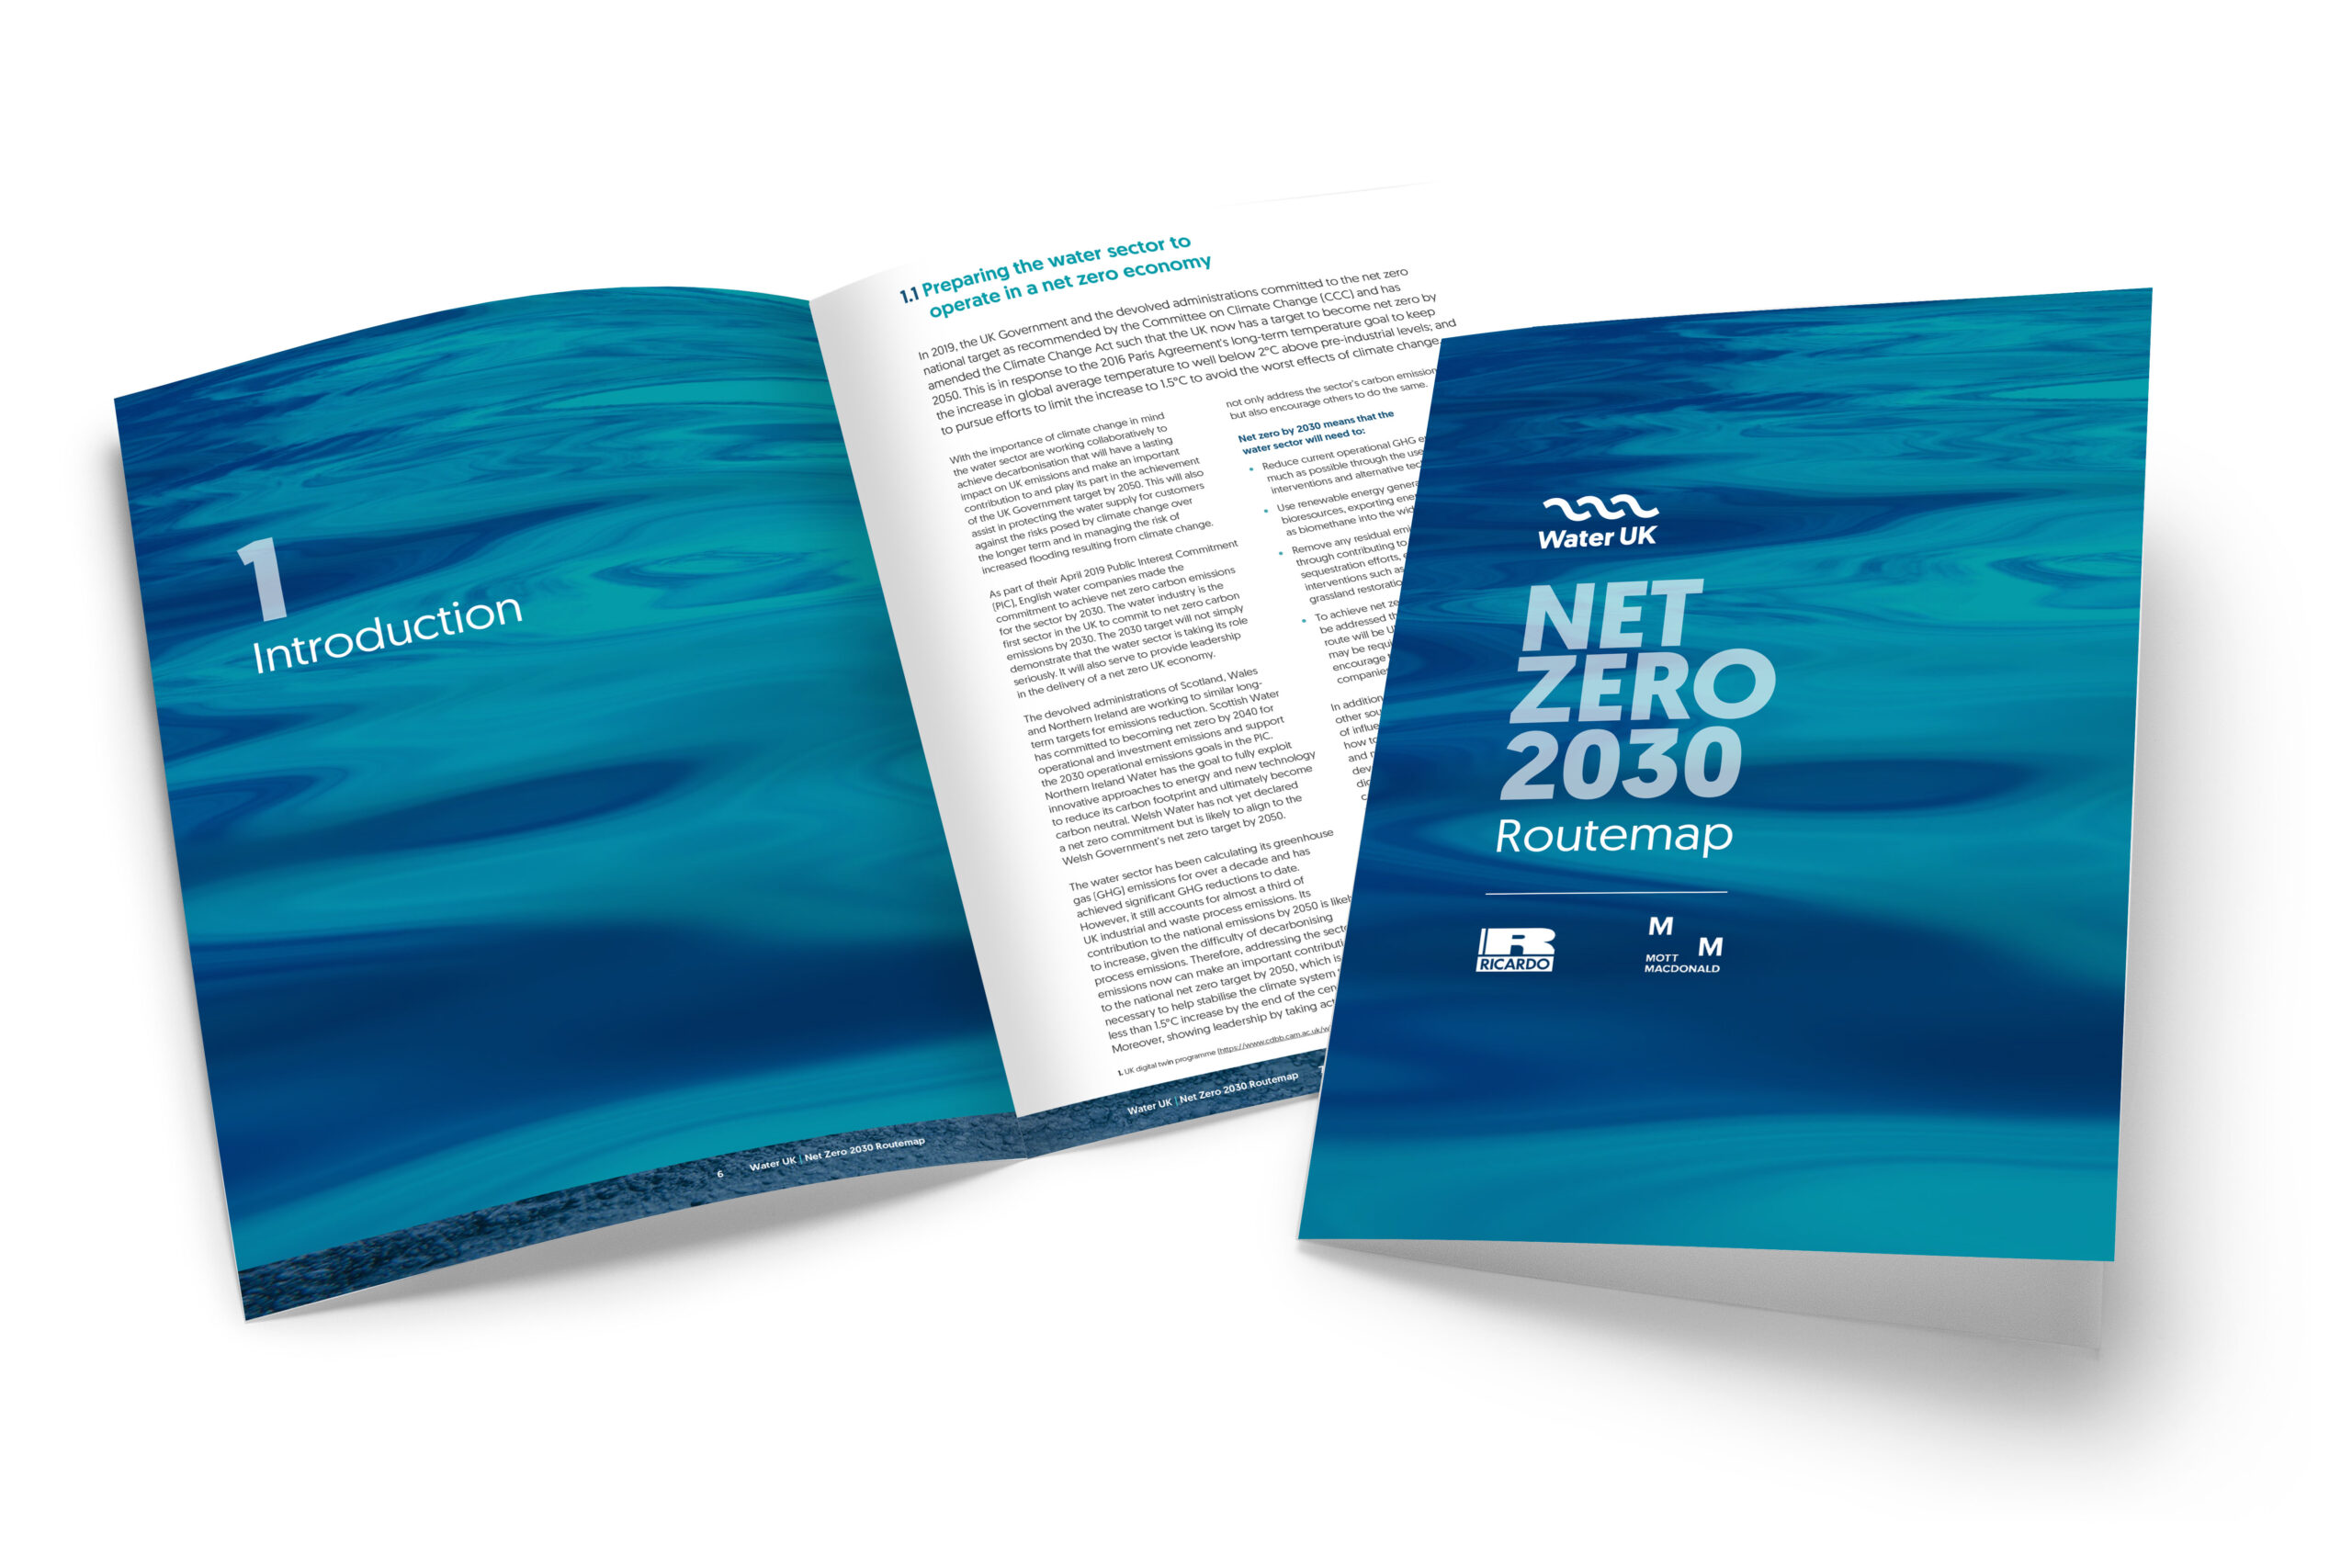 The Net Zero 2030 Routemap